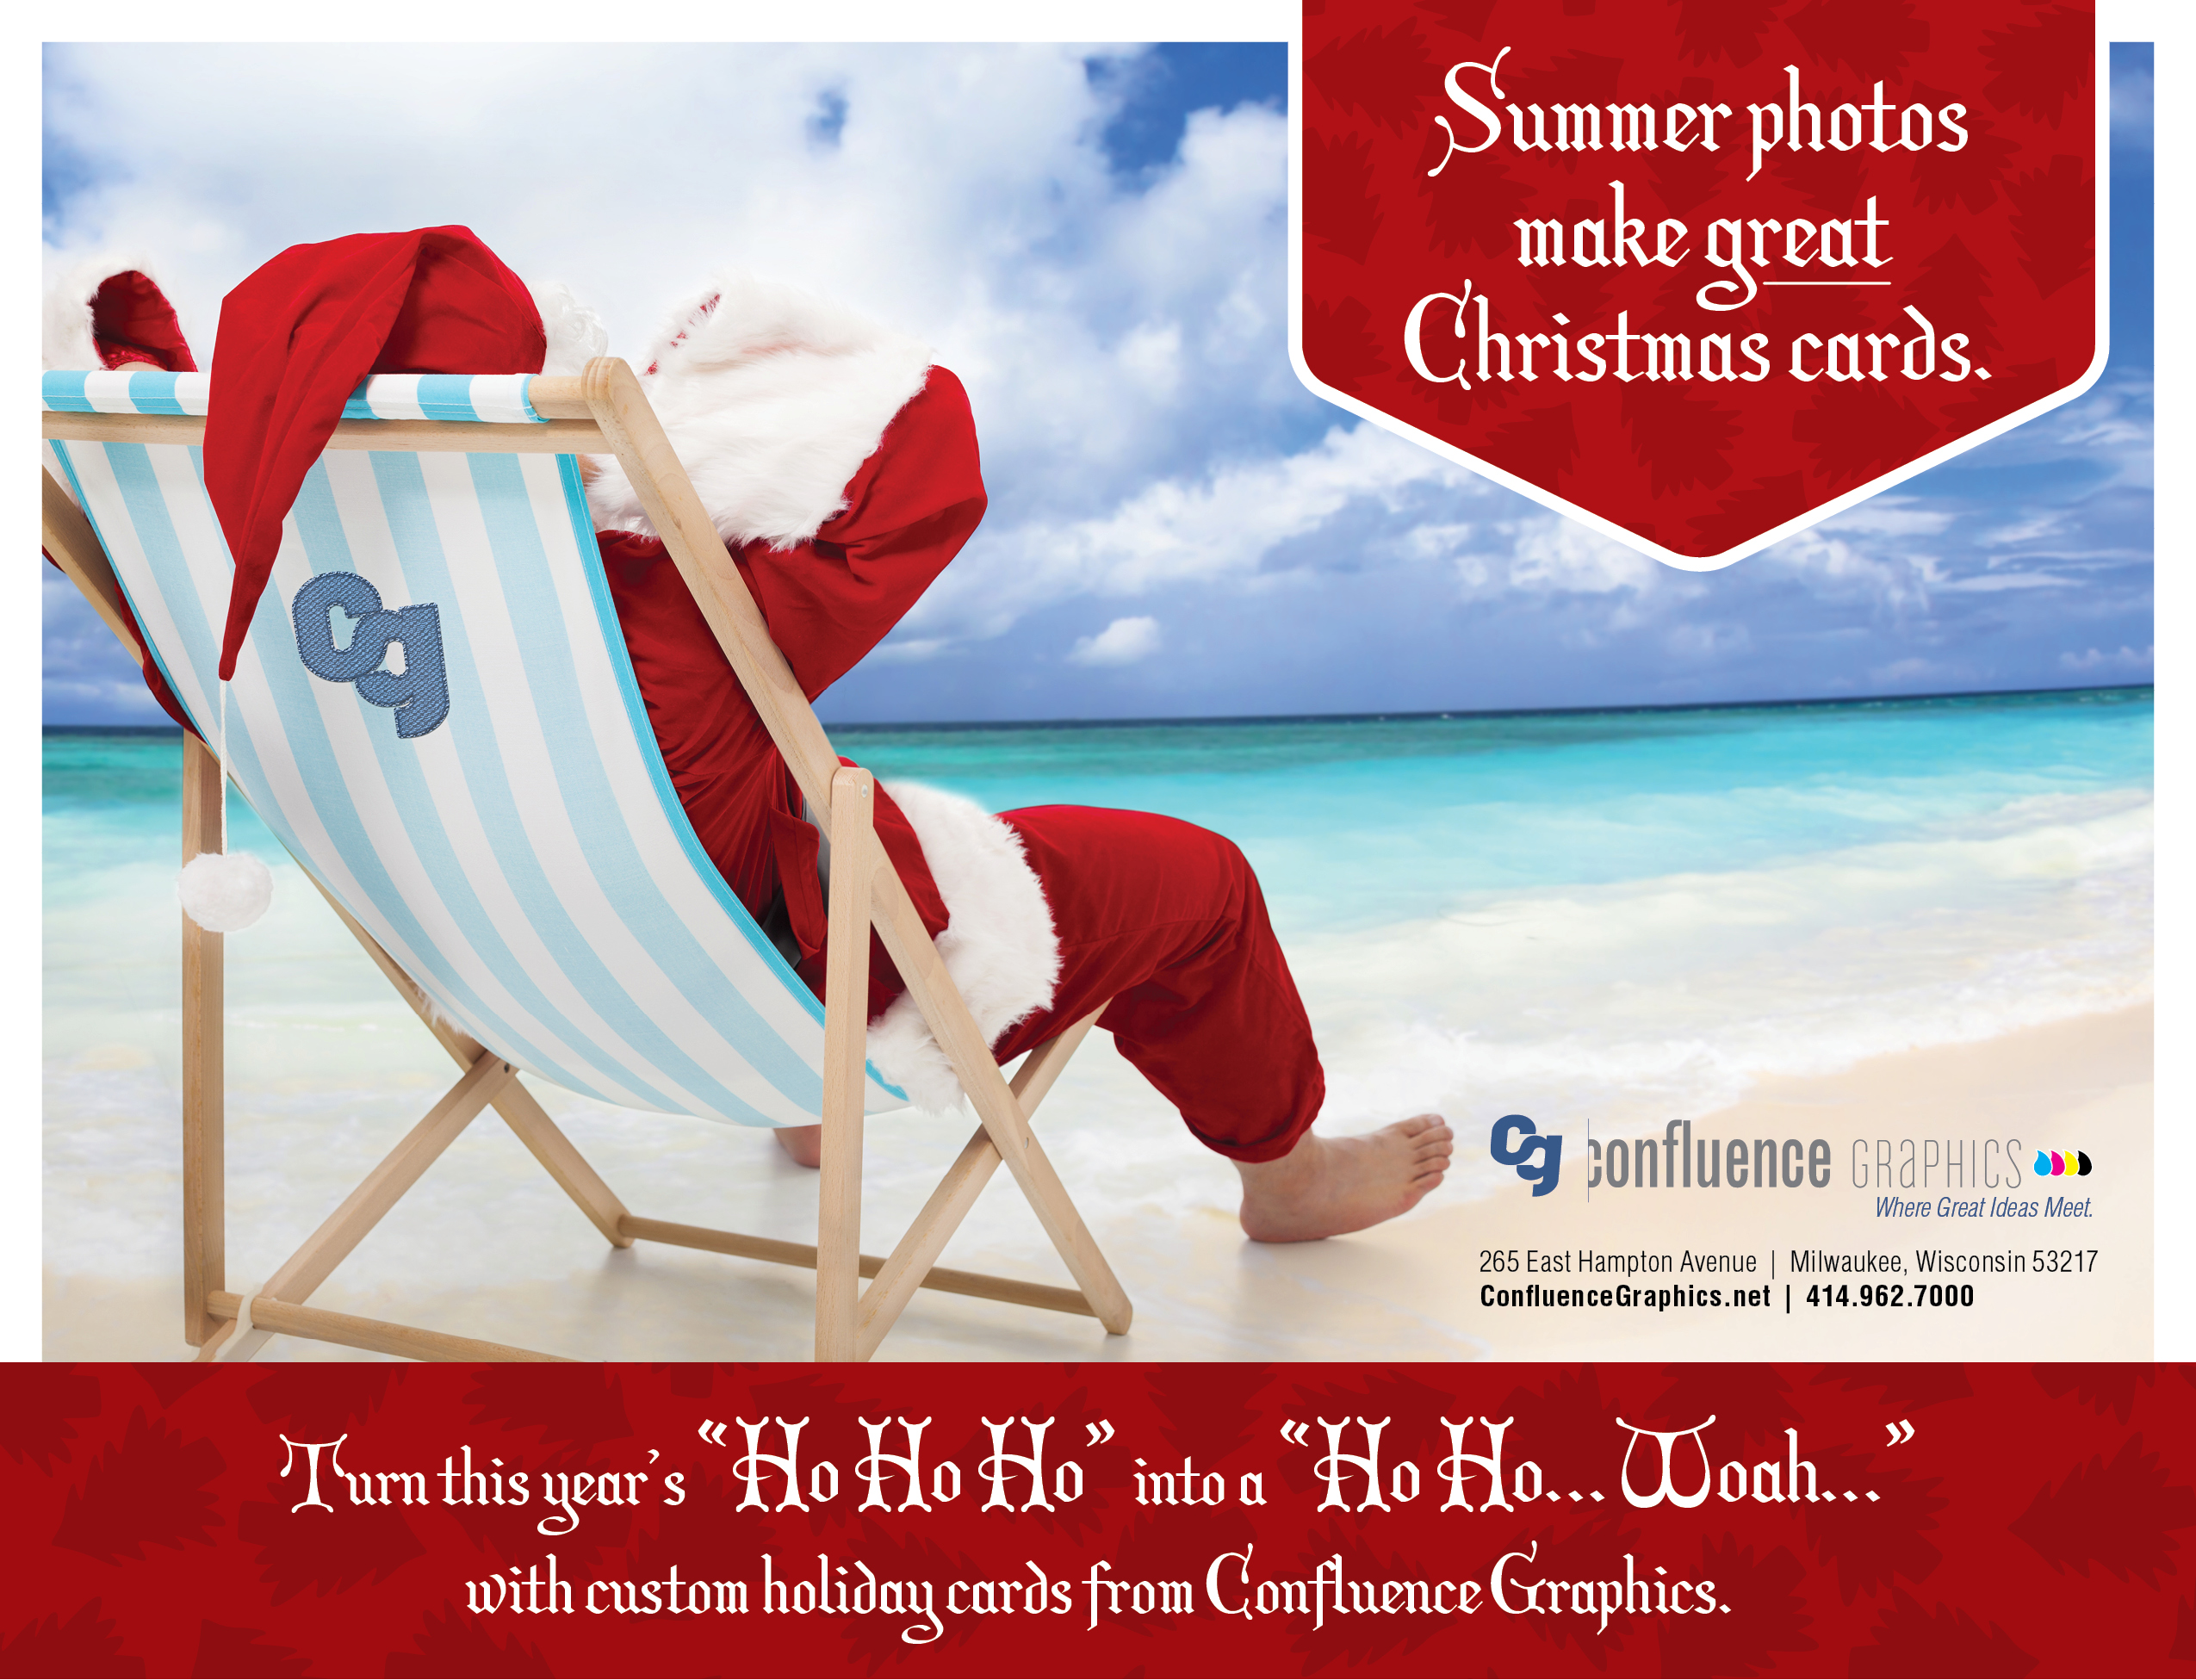 Christmas In July Ideas For Work.Confluence Graphics Printing Services Milwaukee Graphic